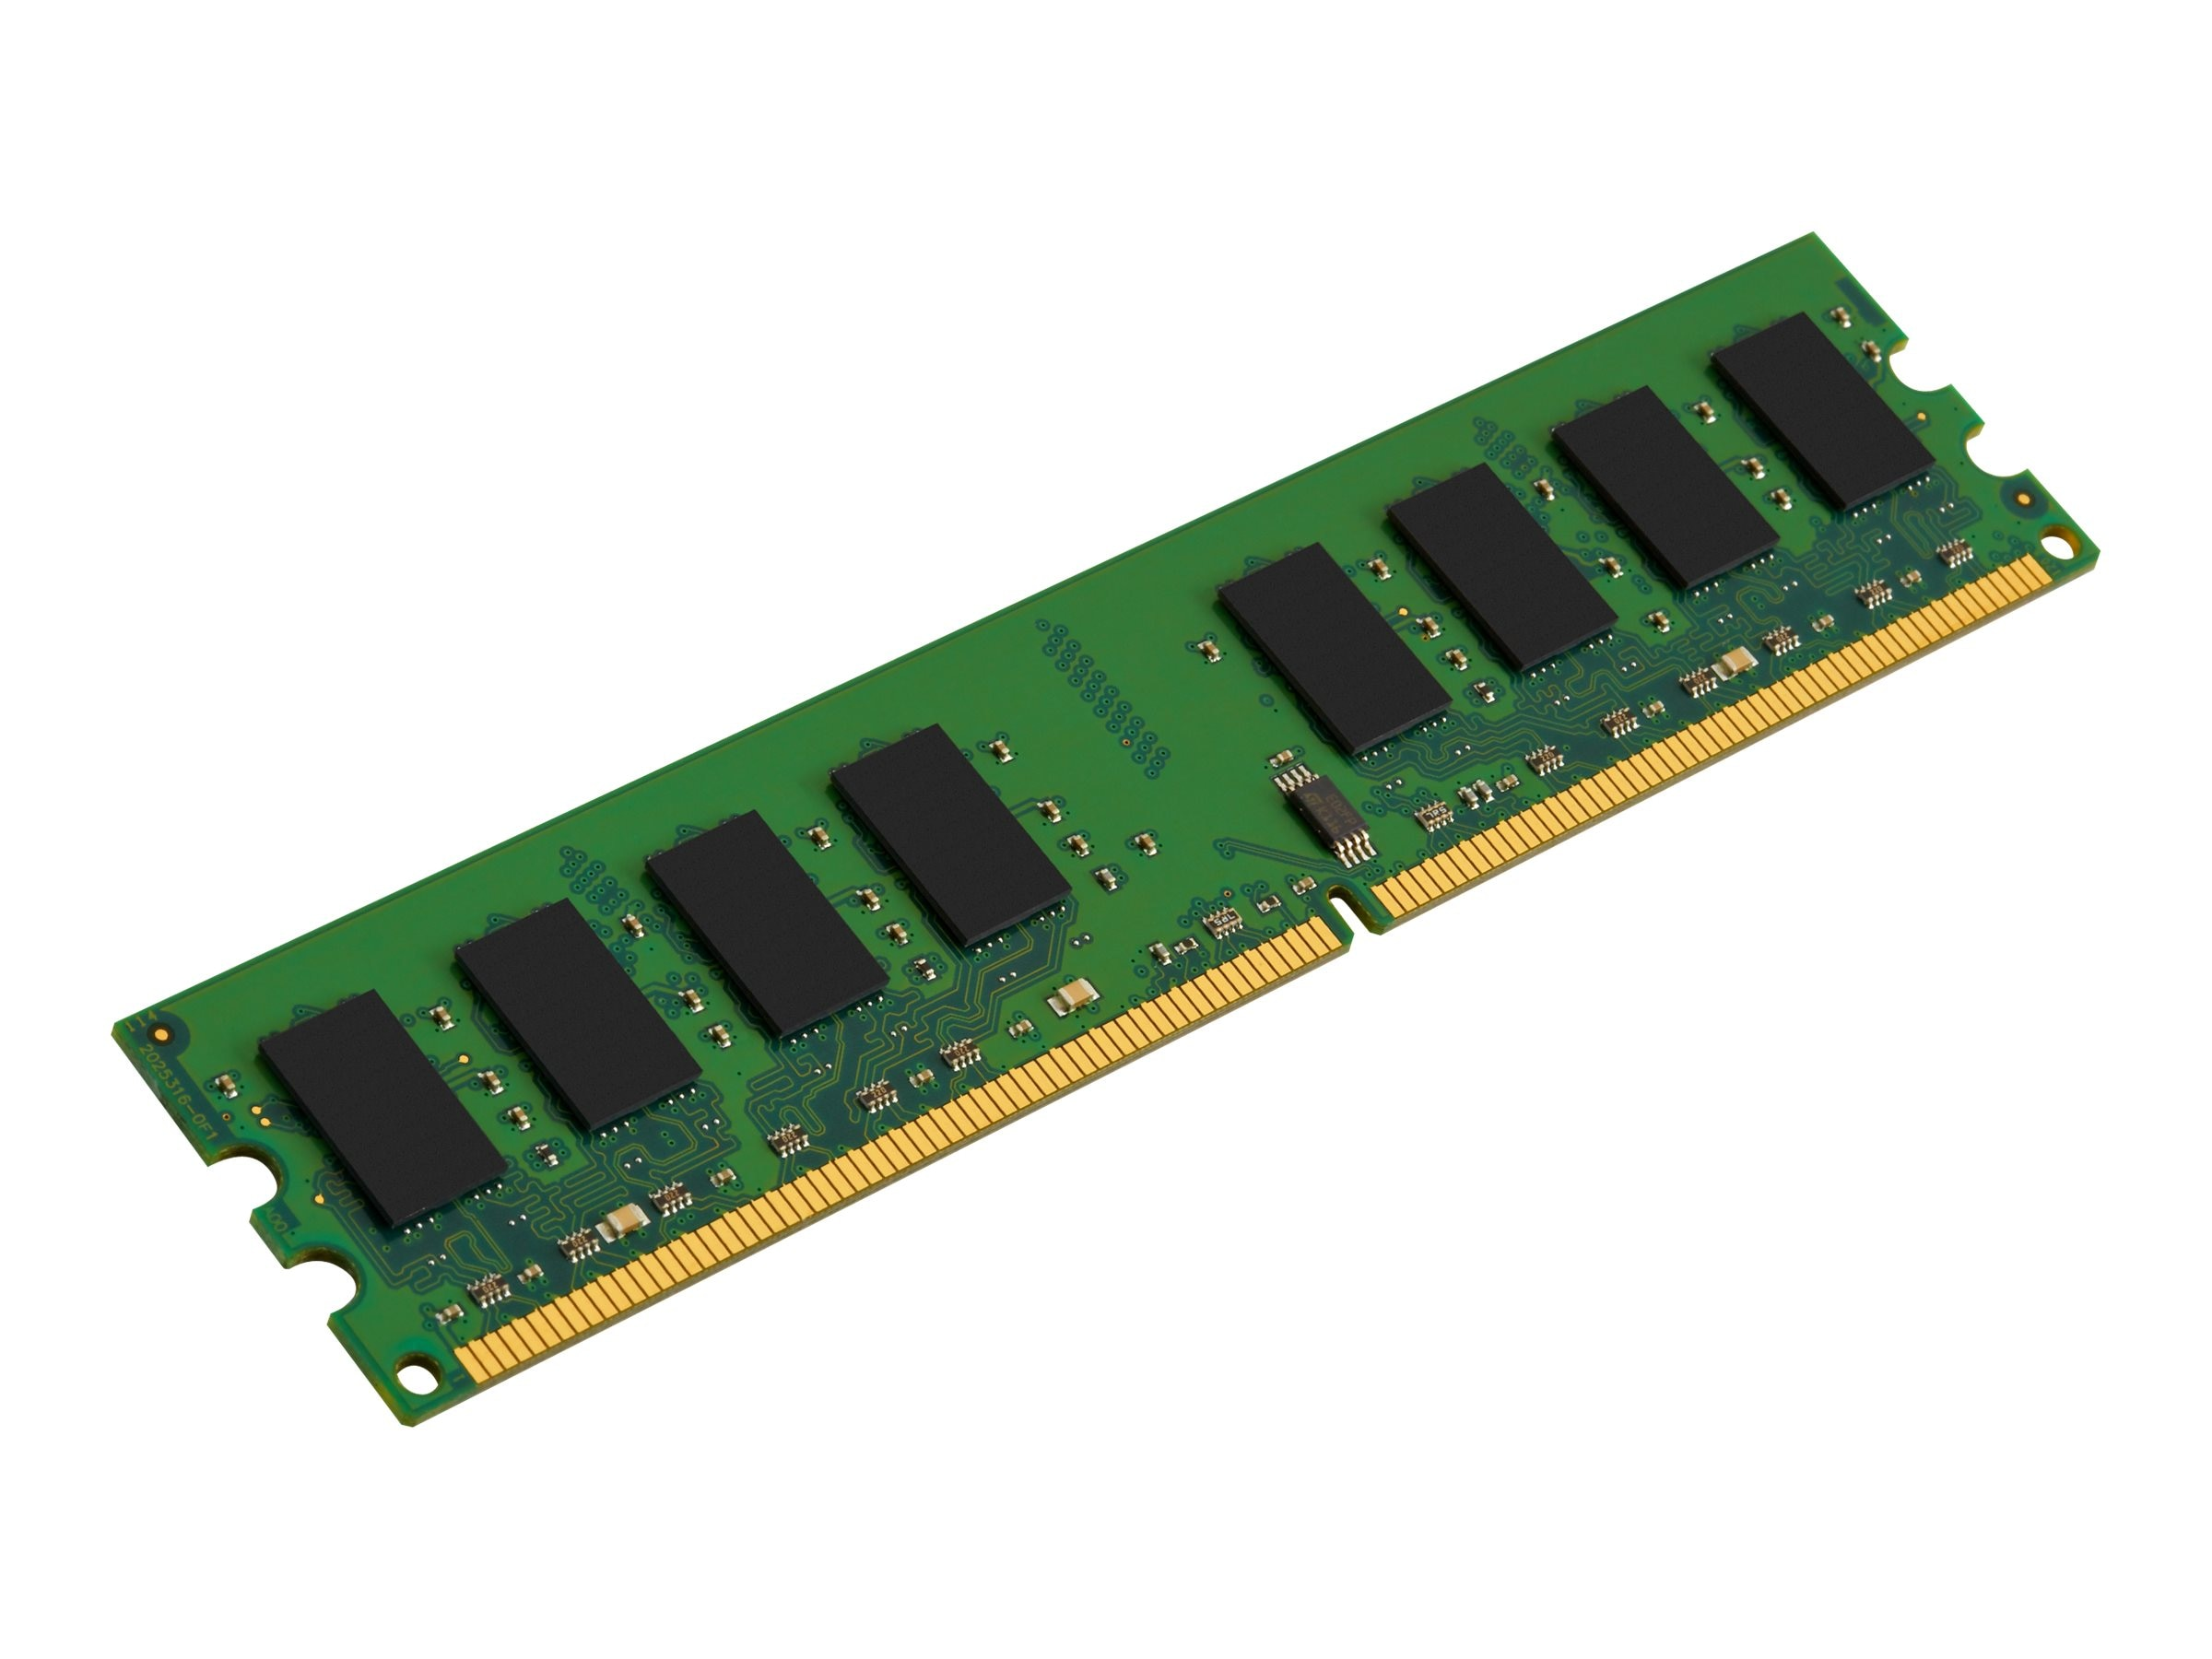 Kingston 2GB PC2-5300 240-pin DDR2 SDRAM UDIMM for Select Dell Models